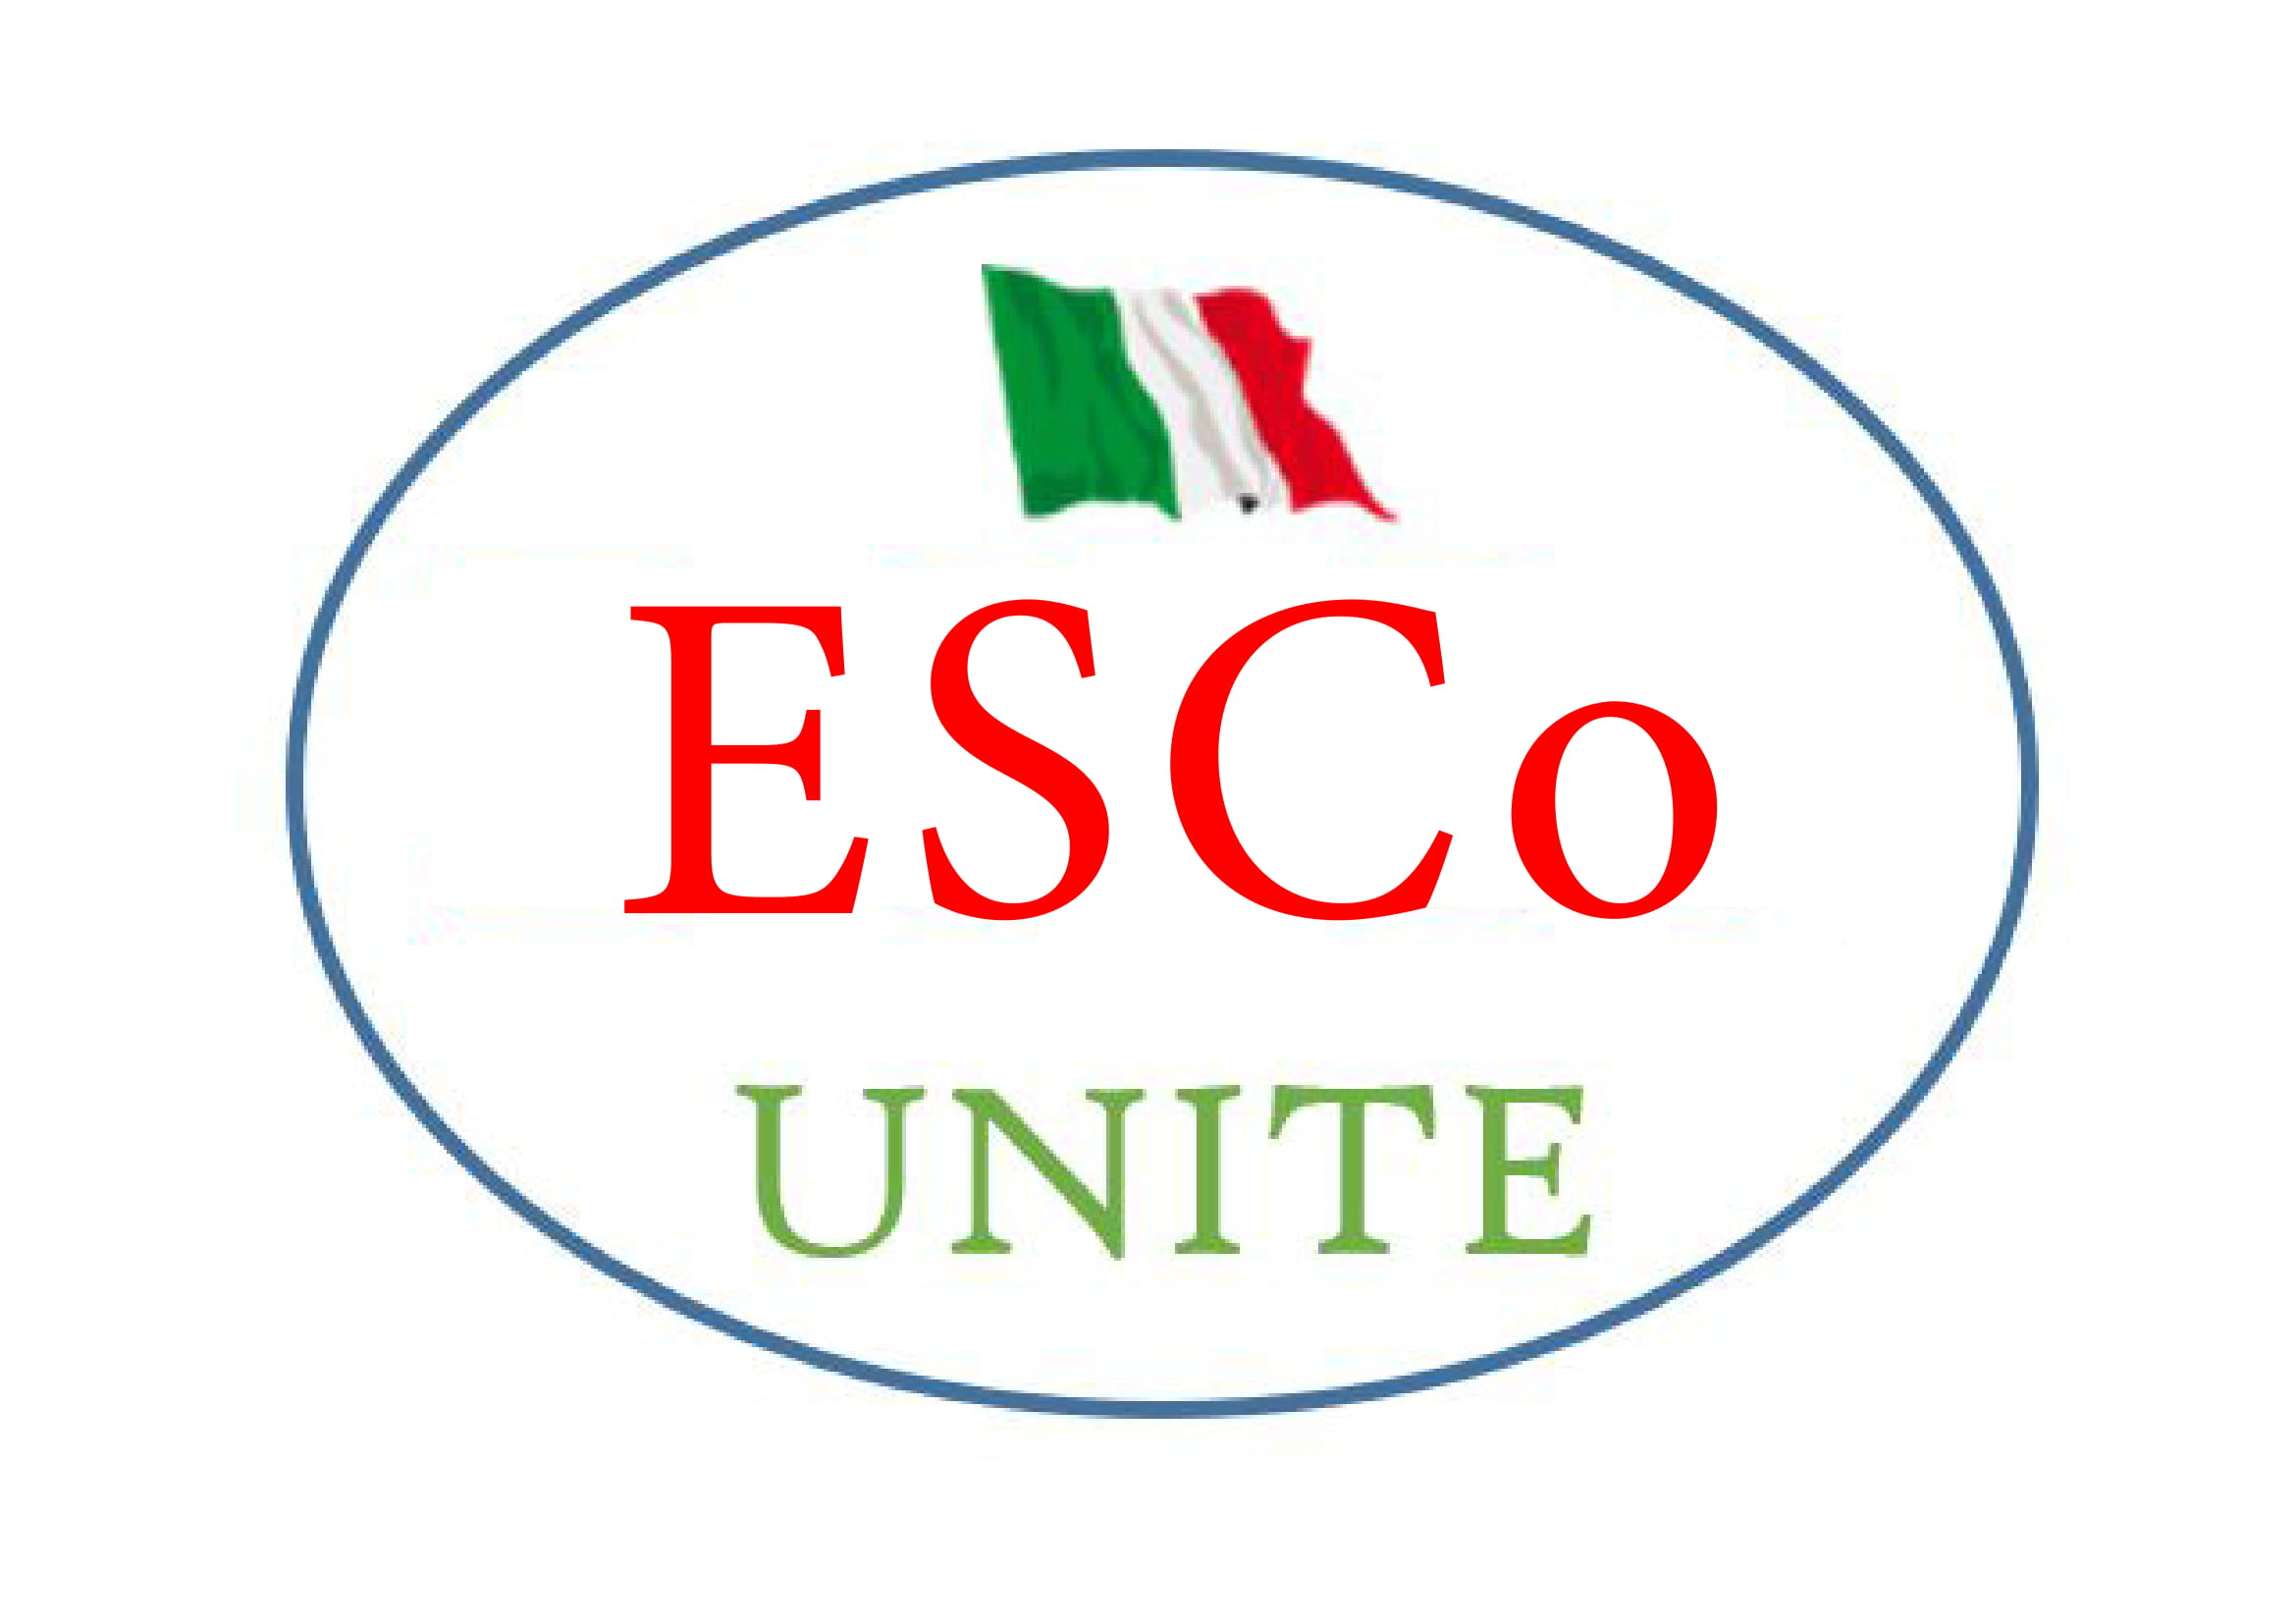 logo-escounite.jpg